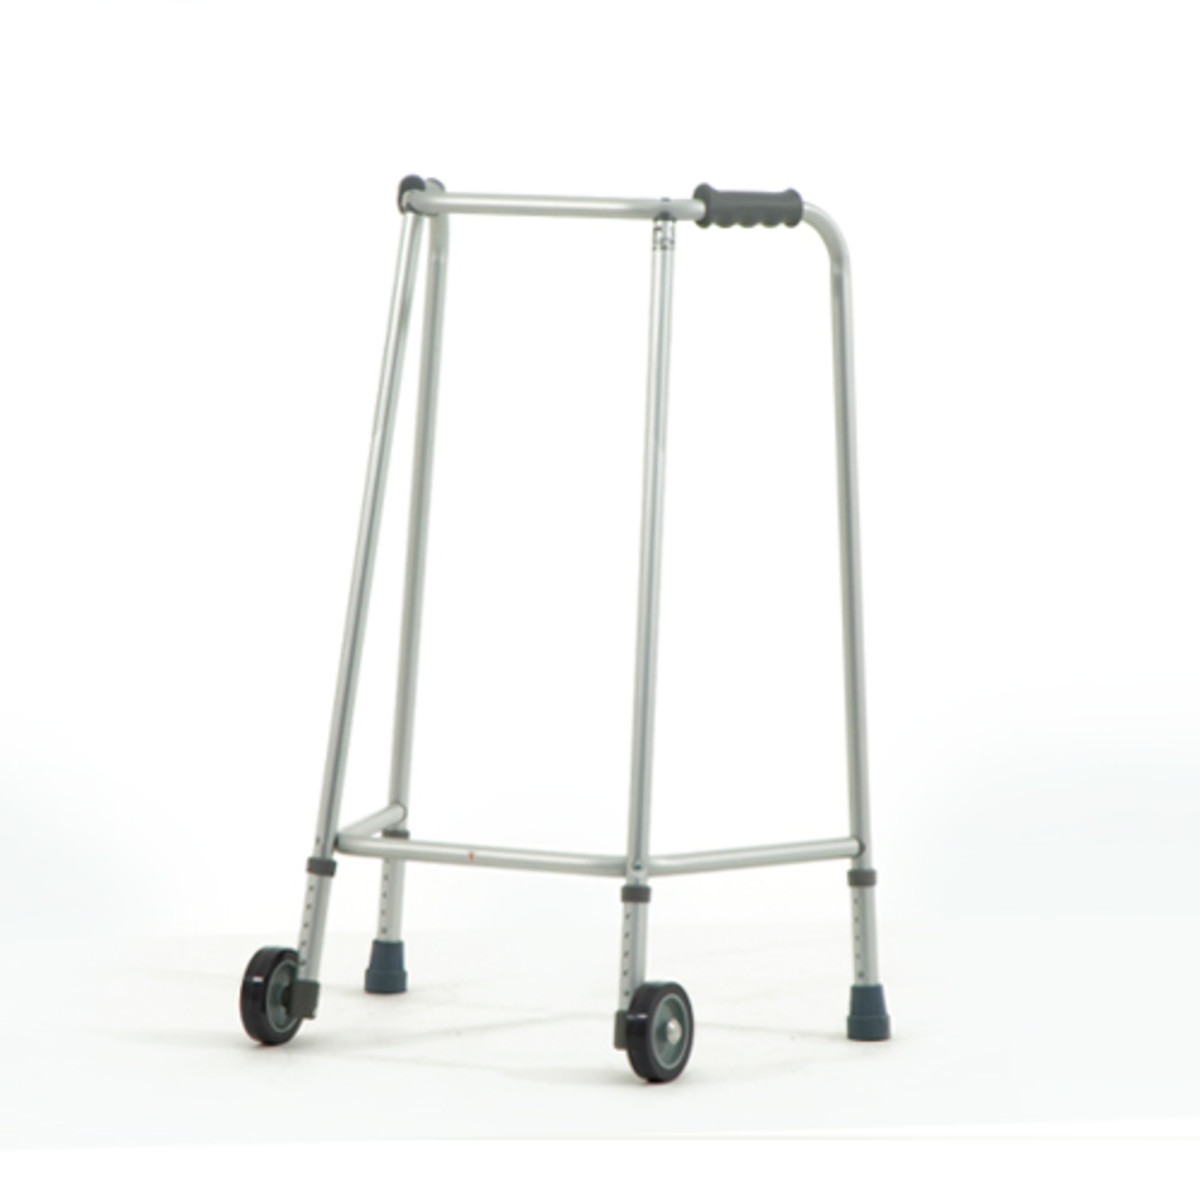 a walking frame with wheels- it's best to get a professional to assess you for this kind of equipment